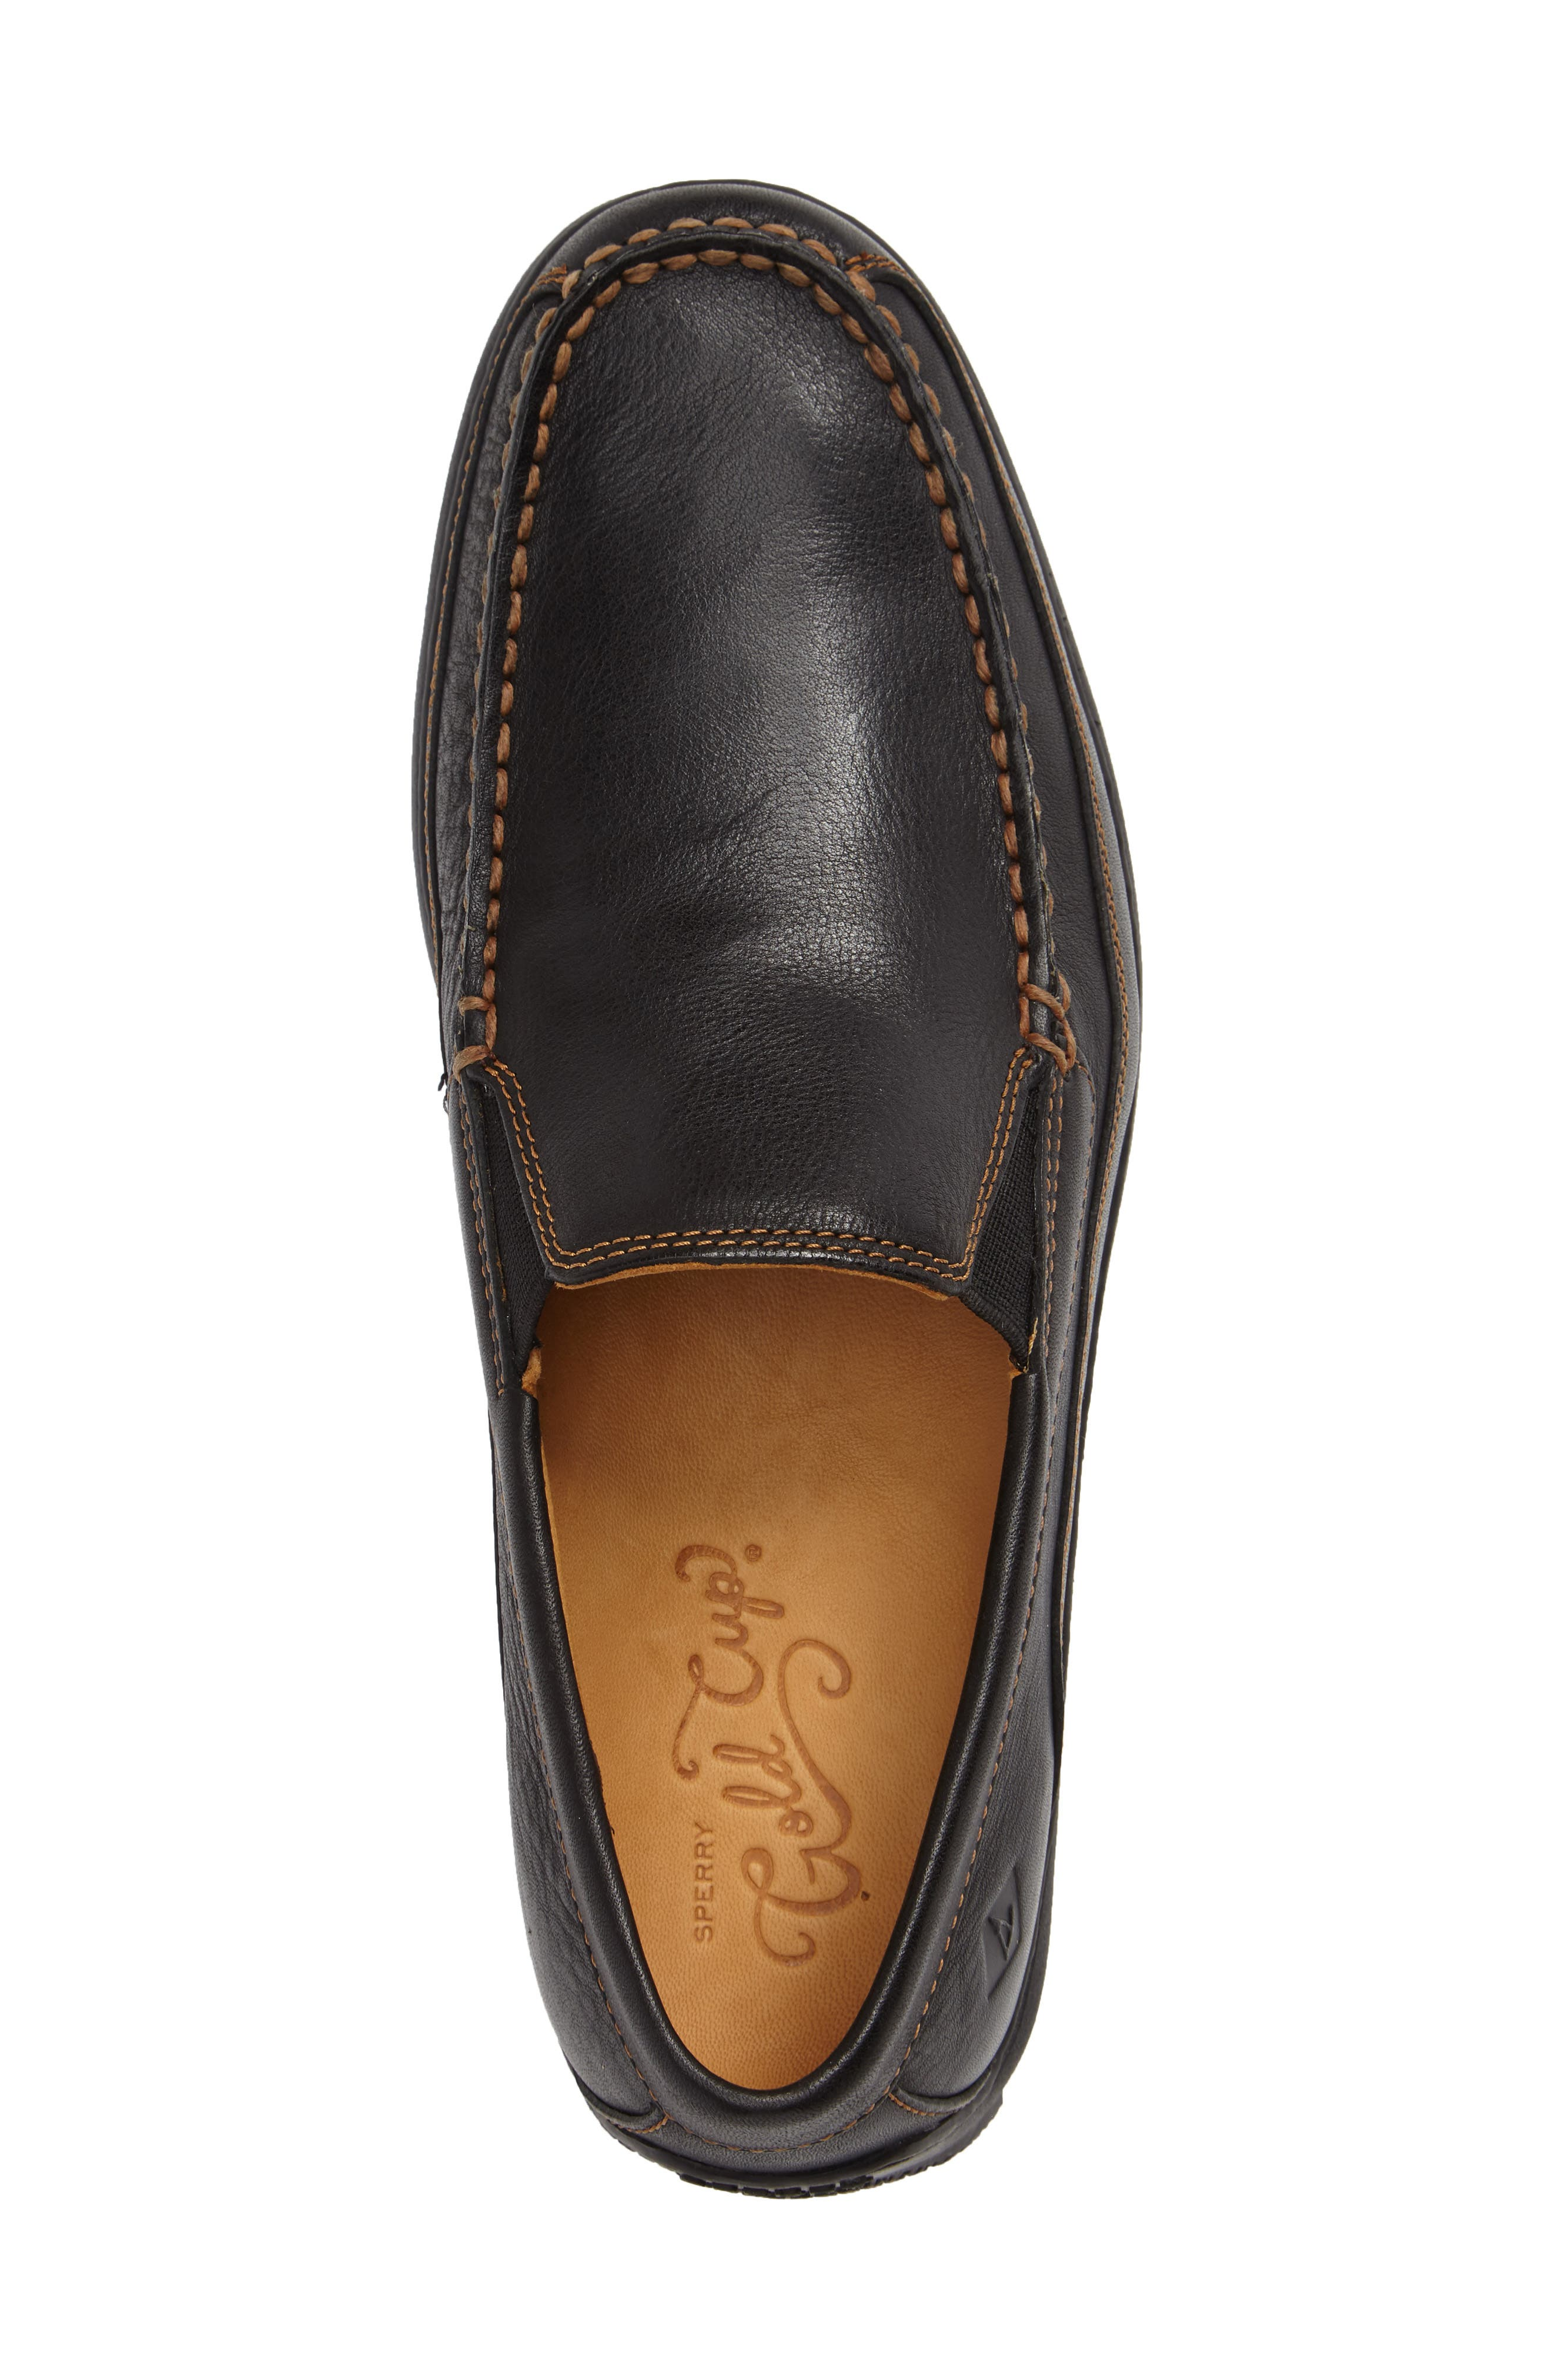 Gold Cup Loafer,                             Alternate thumbnail 3, color,                             001